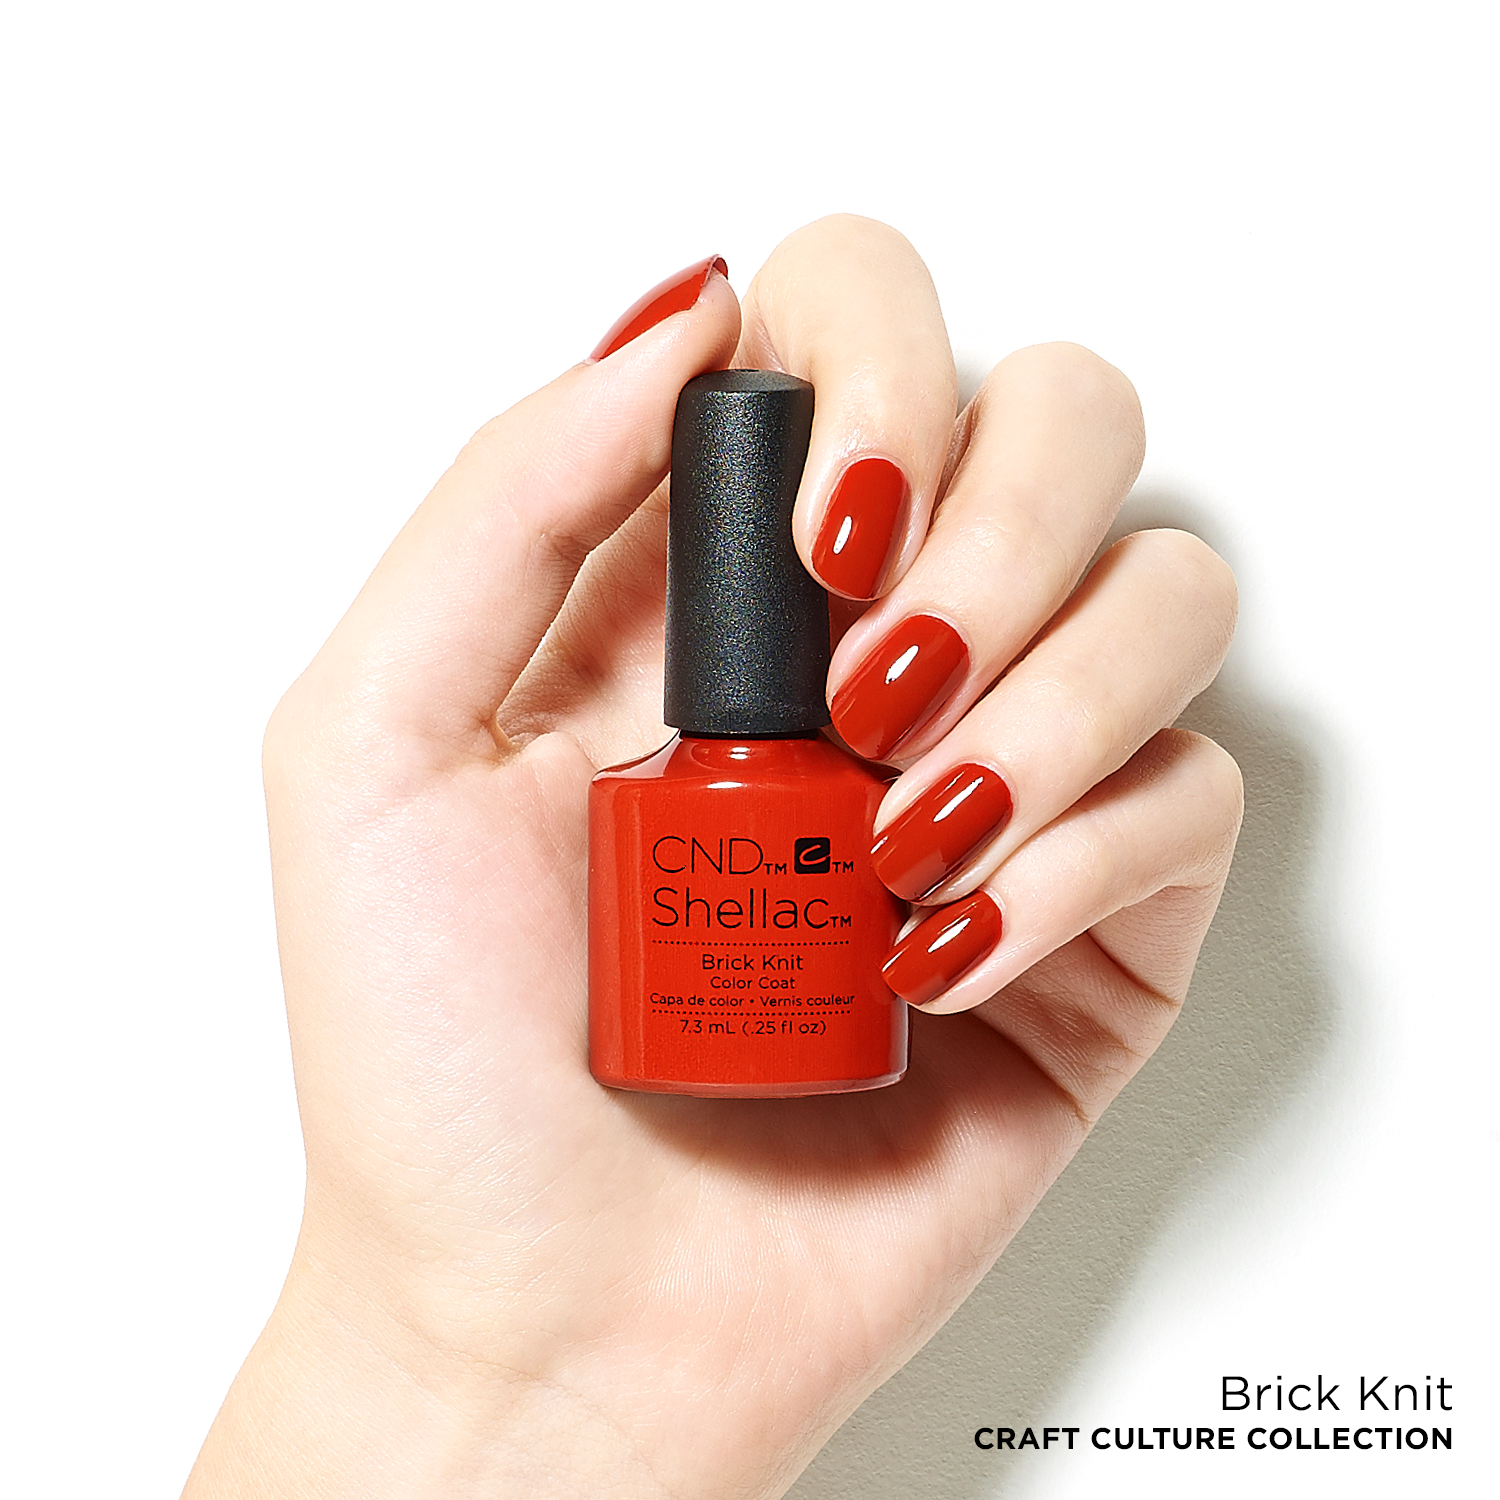 Brick Knit, Craft Culture Collection - Fall 2016 | Nails-Shellac ...